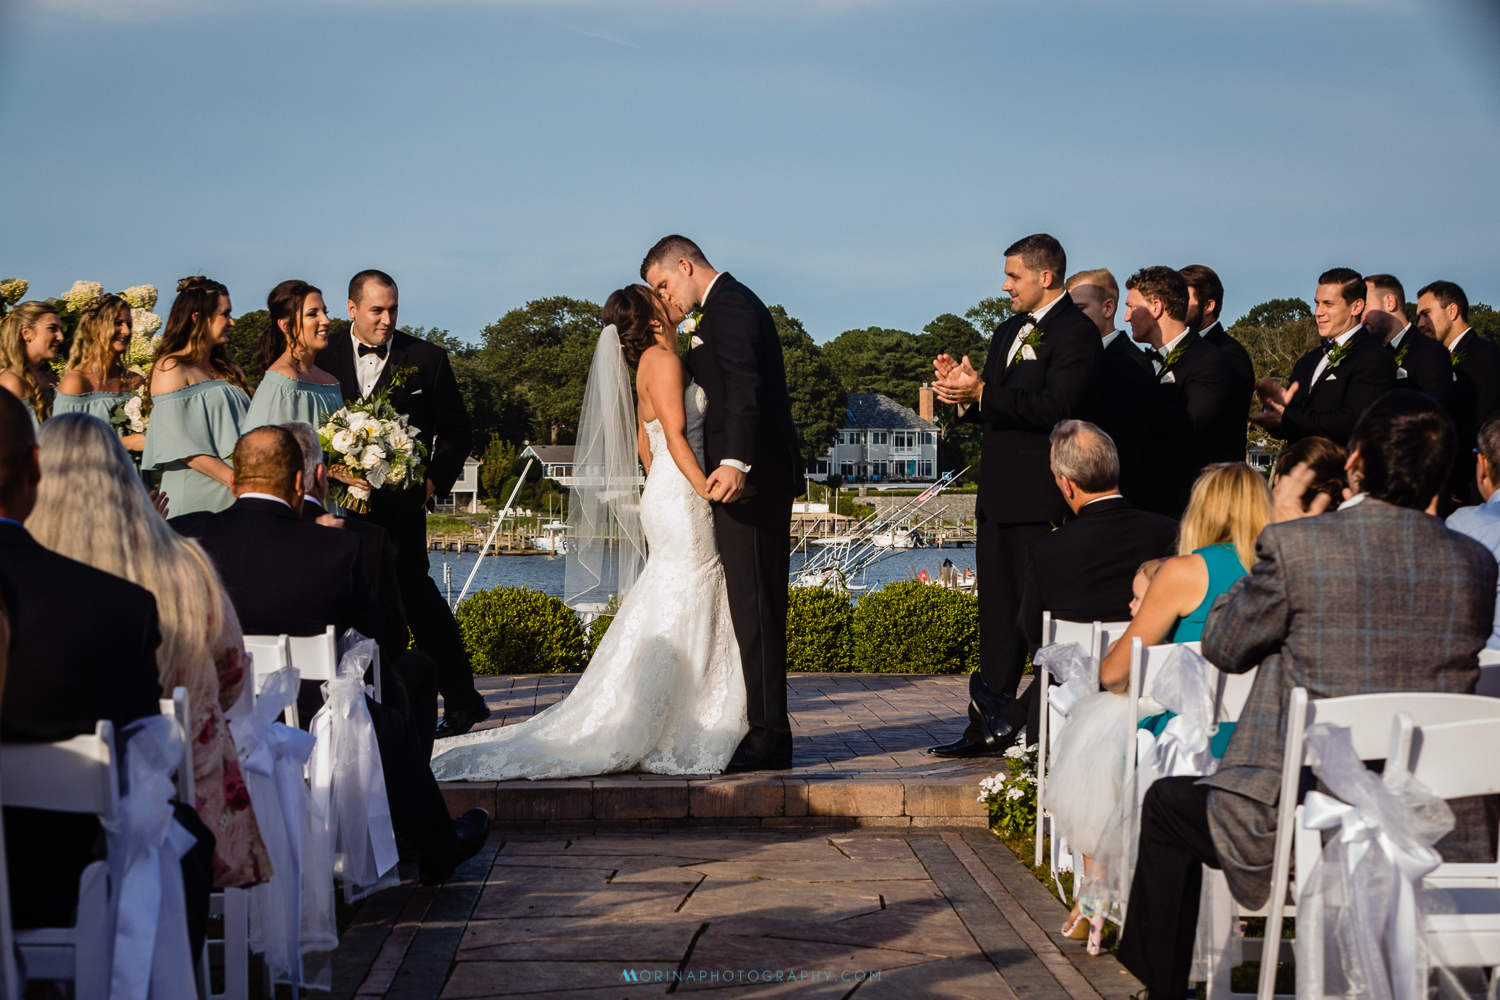 Amanda & Austin wedding at Crystal Point Yacht Club 83.jpg